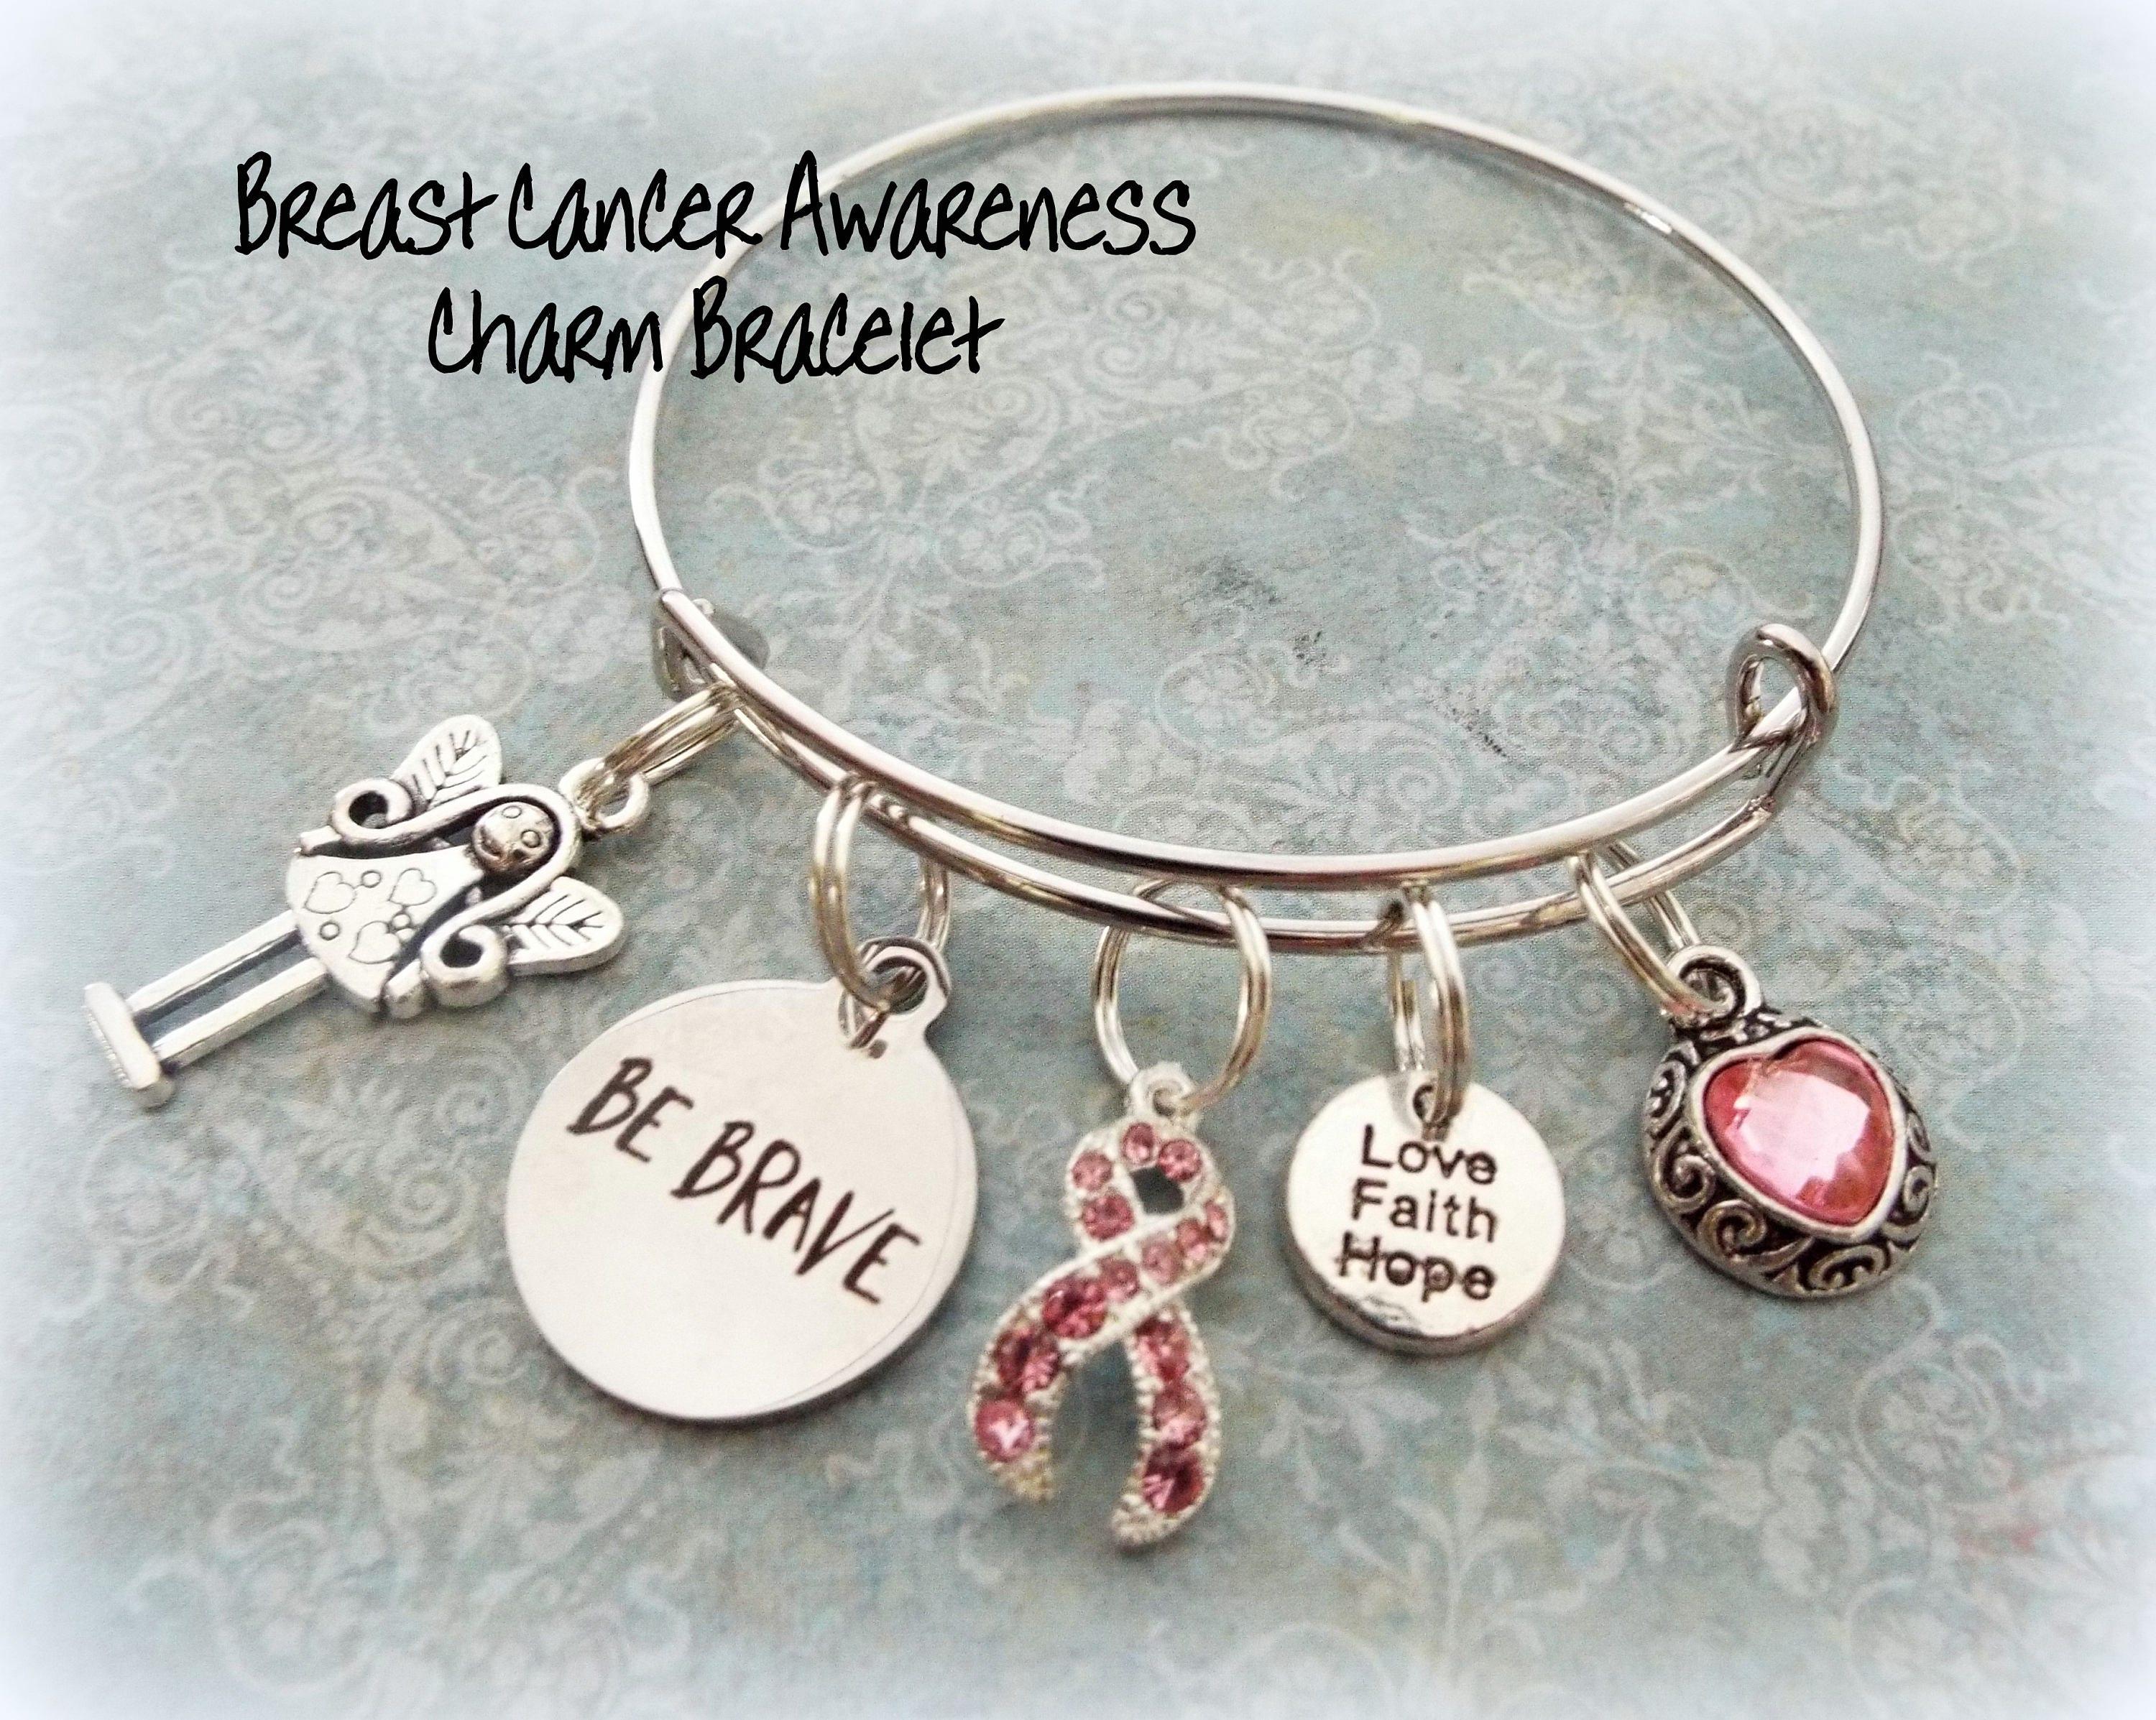 pin chemo be brca breast cancer gift bracelet keychain encouragement awareness pink survivor ribbon strong mastectomy